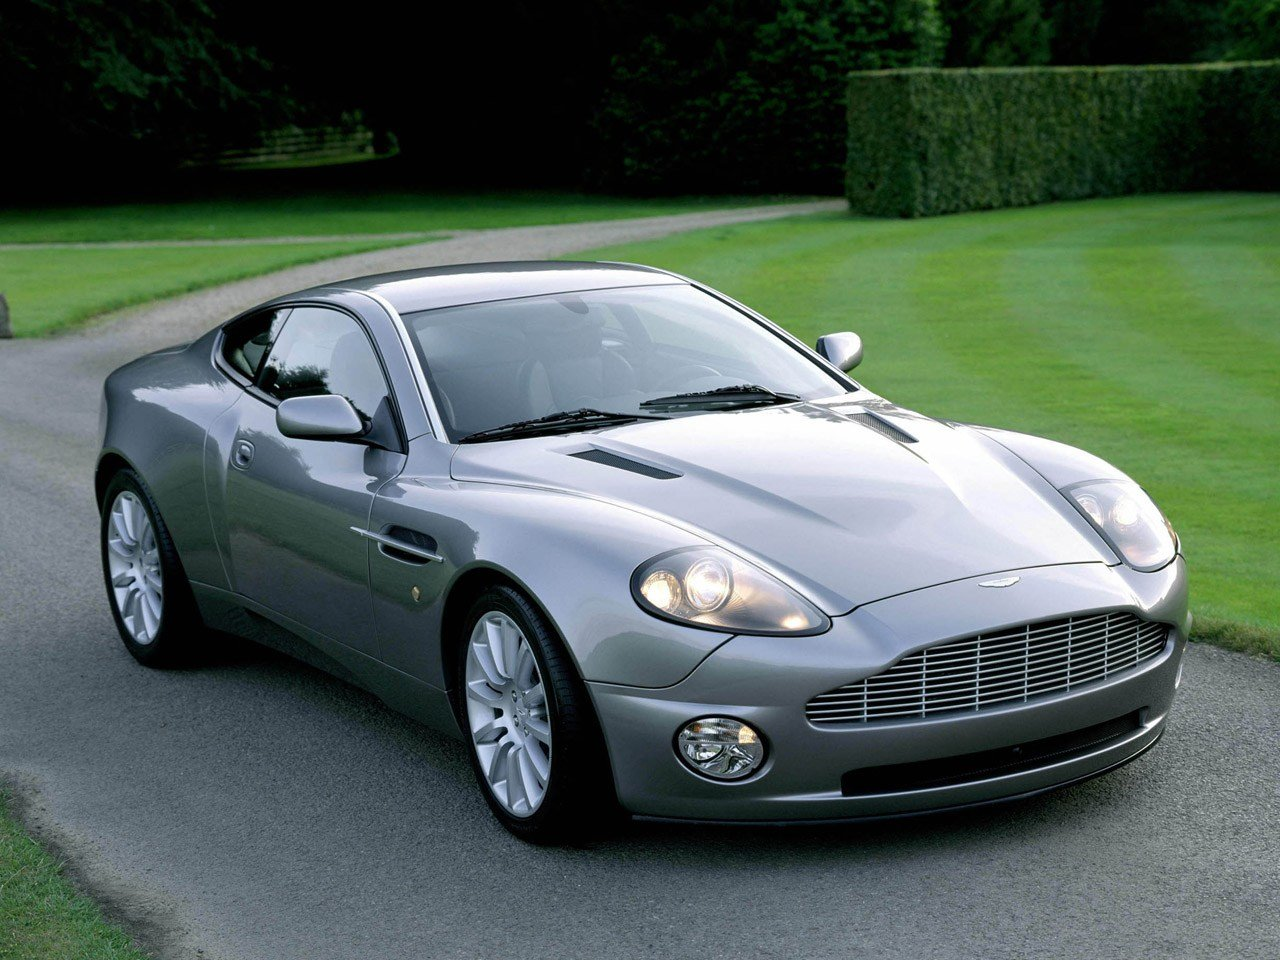 Latest Aston Martin Pictures Pics Wallpapers Photos Images Free Download